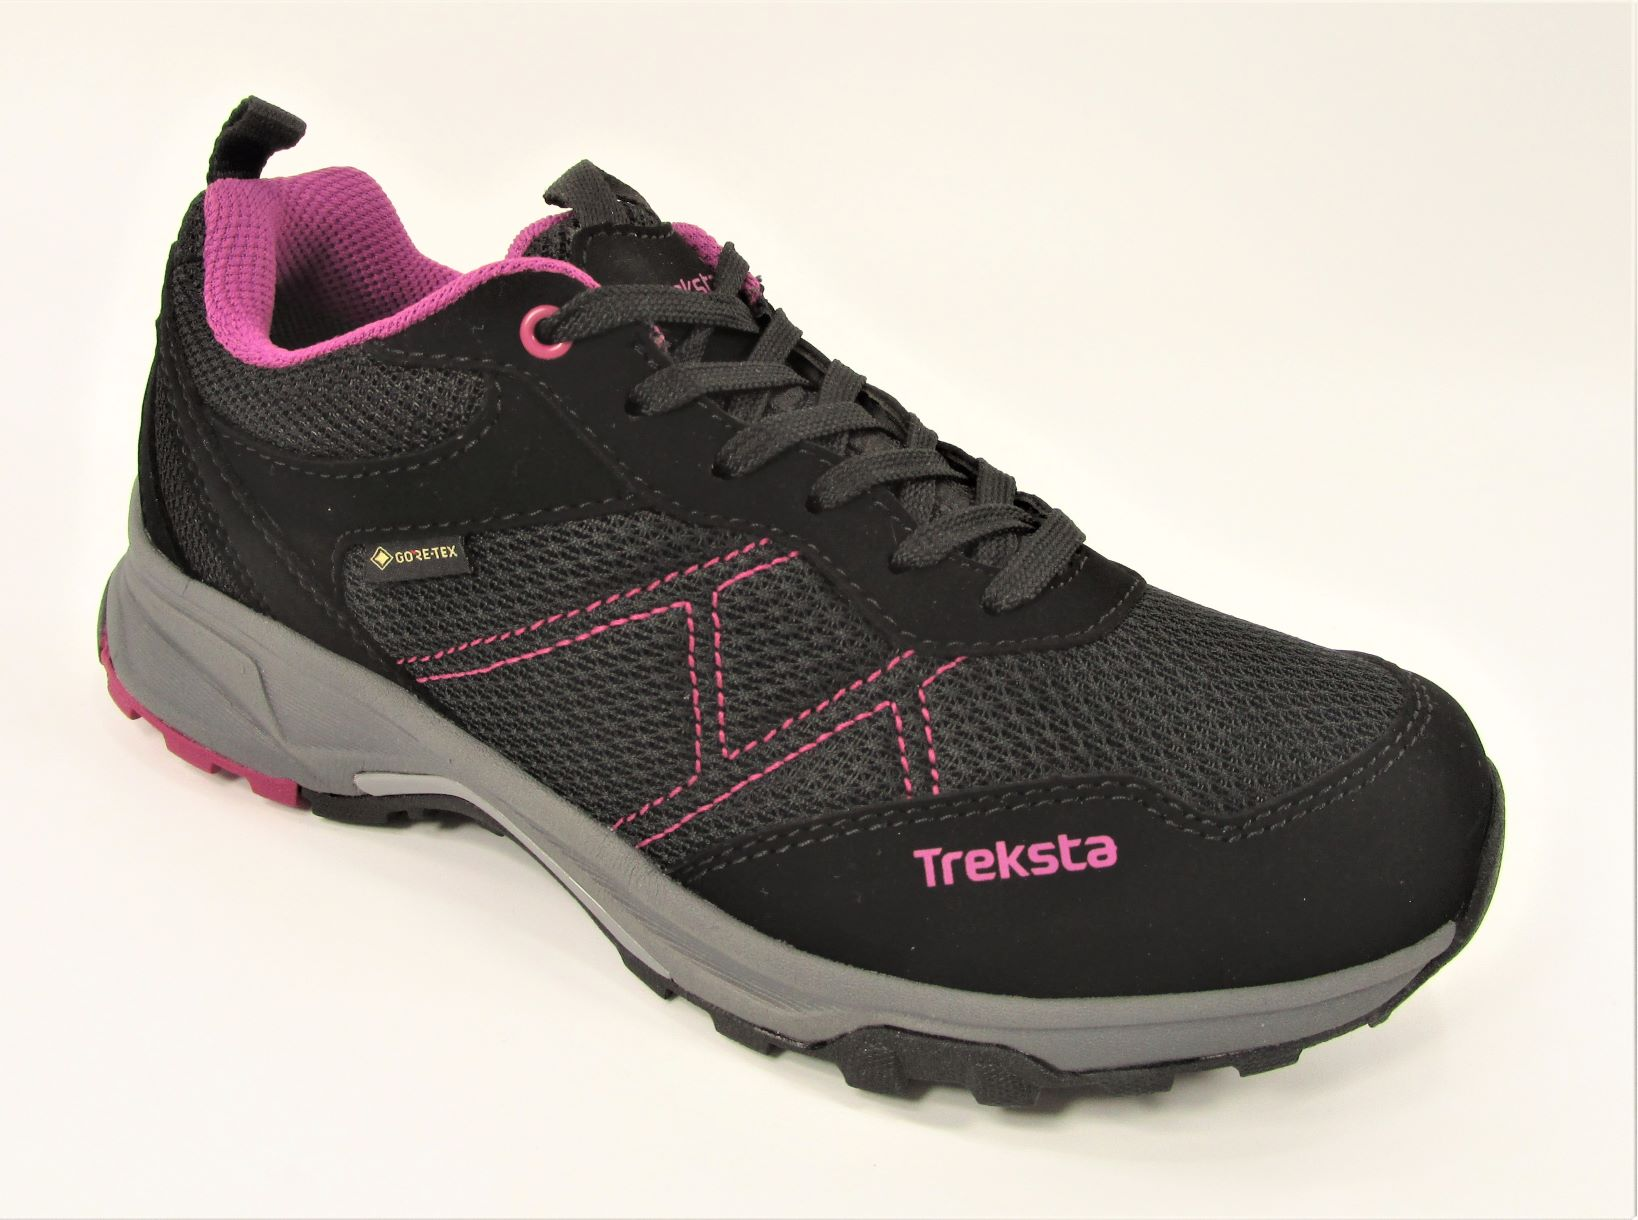 DEPORTIVA BERGEN LACE LOW 02 GTX GORE-TEX HYPERGRIP NEGRO/ROSA